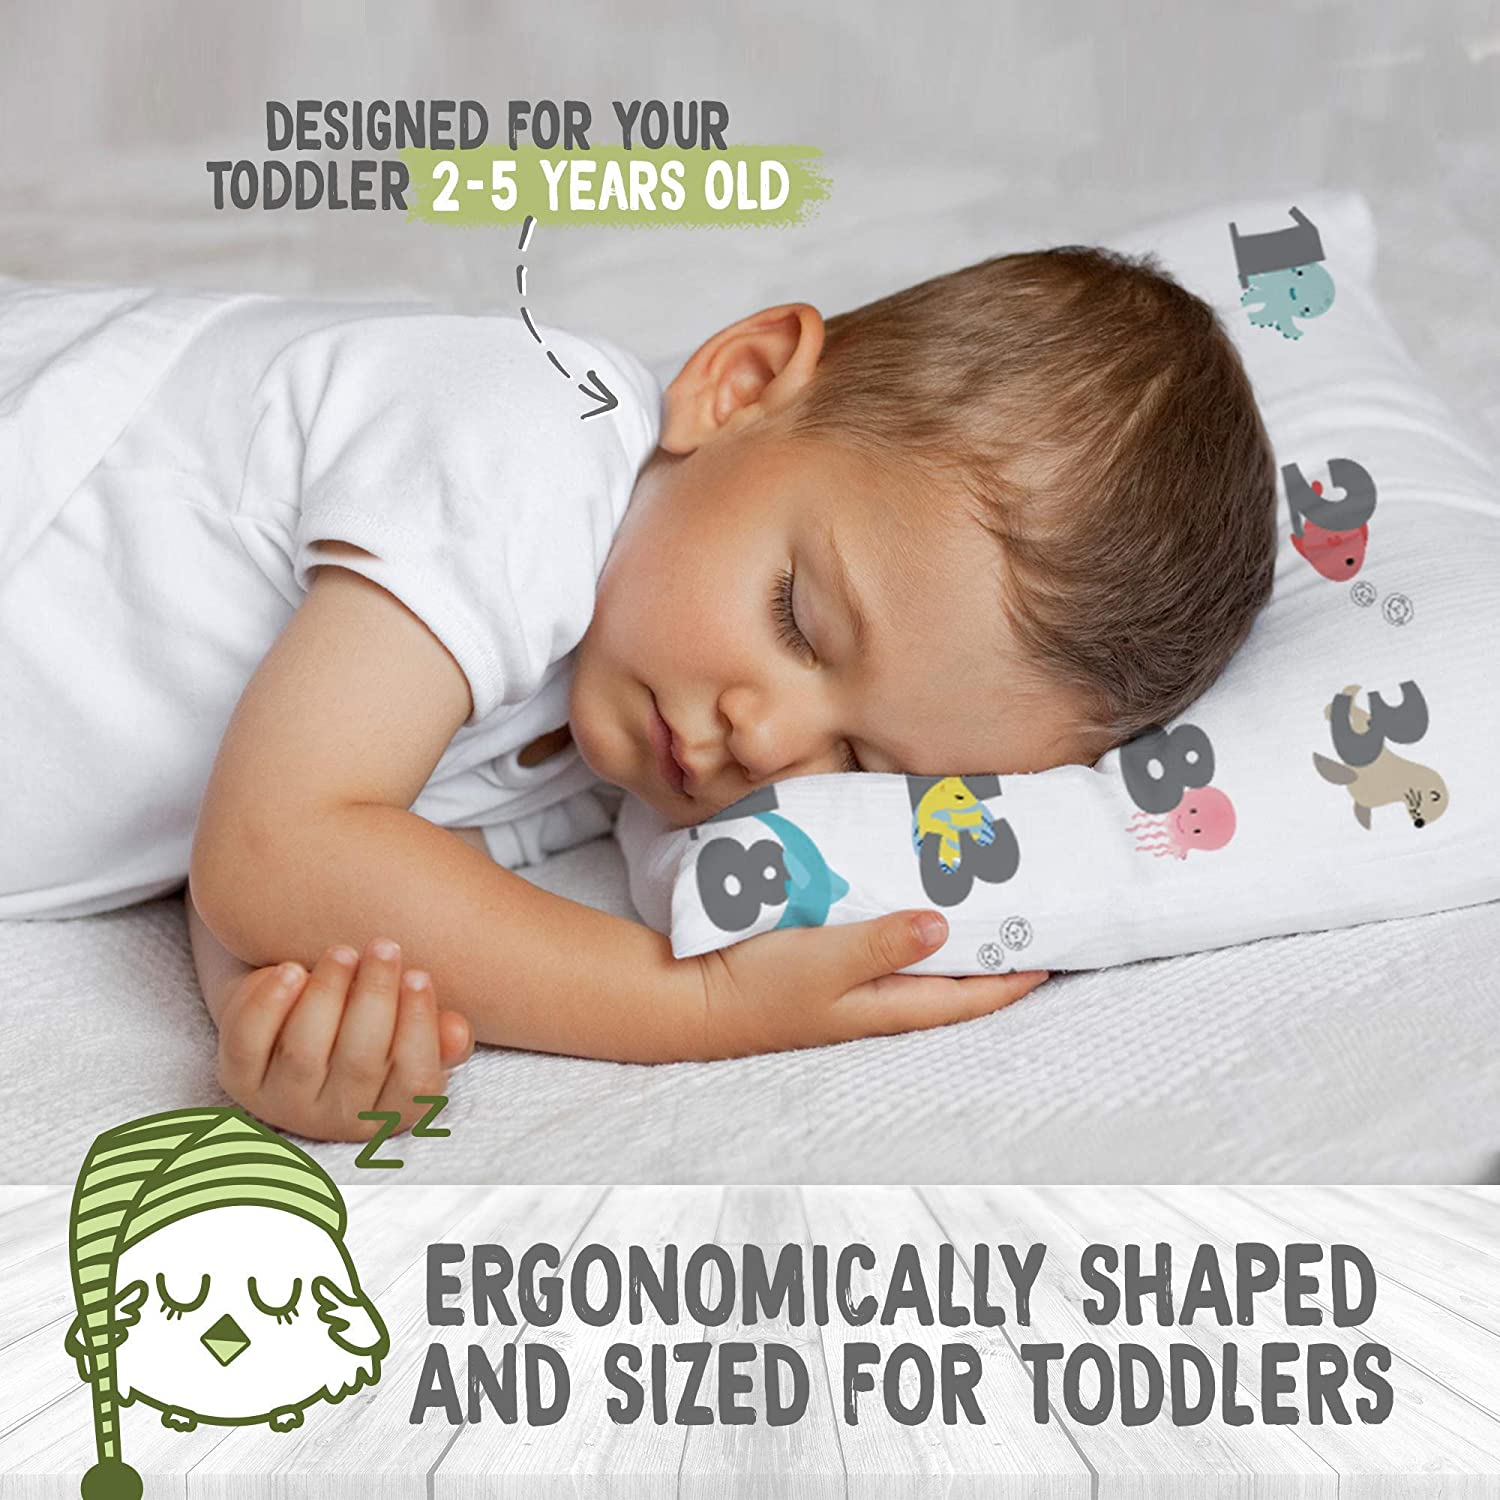 Toddler Cot Toddlers 13X18 Soft Organic Cotton Baby Pillows for Sleeping Kea123 Toddler Pillow with Pillowcase Machine Washable Bed Set Perfect for Travel Kids Infant